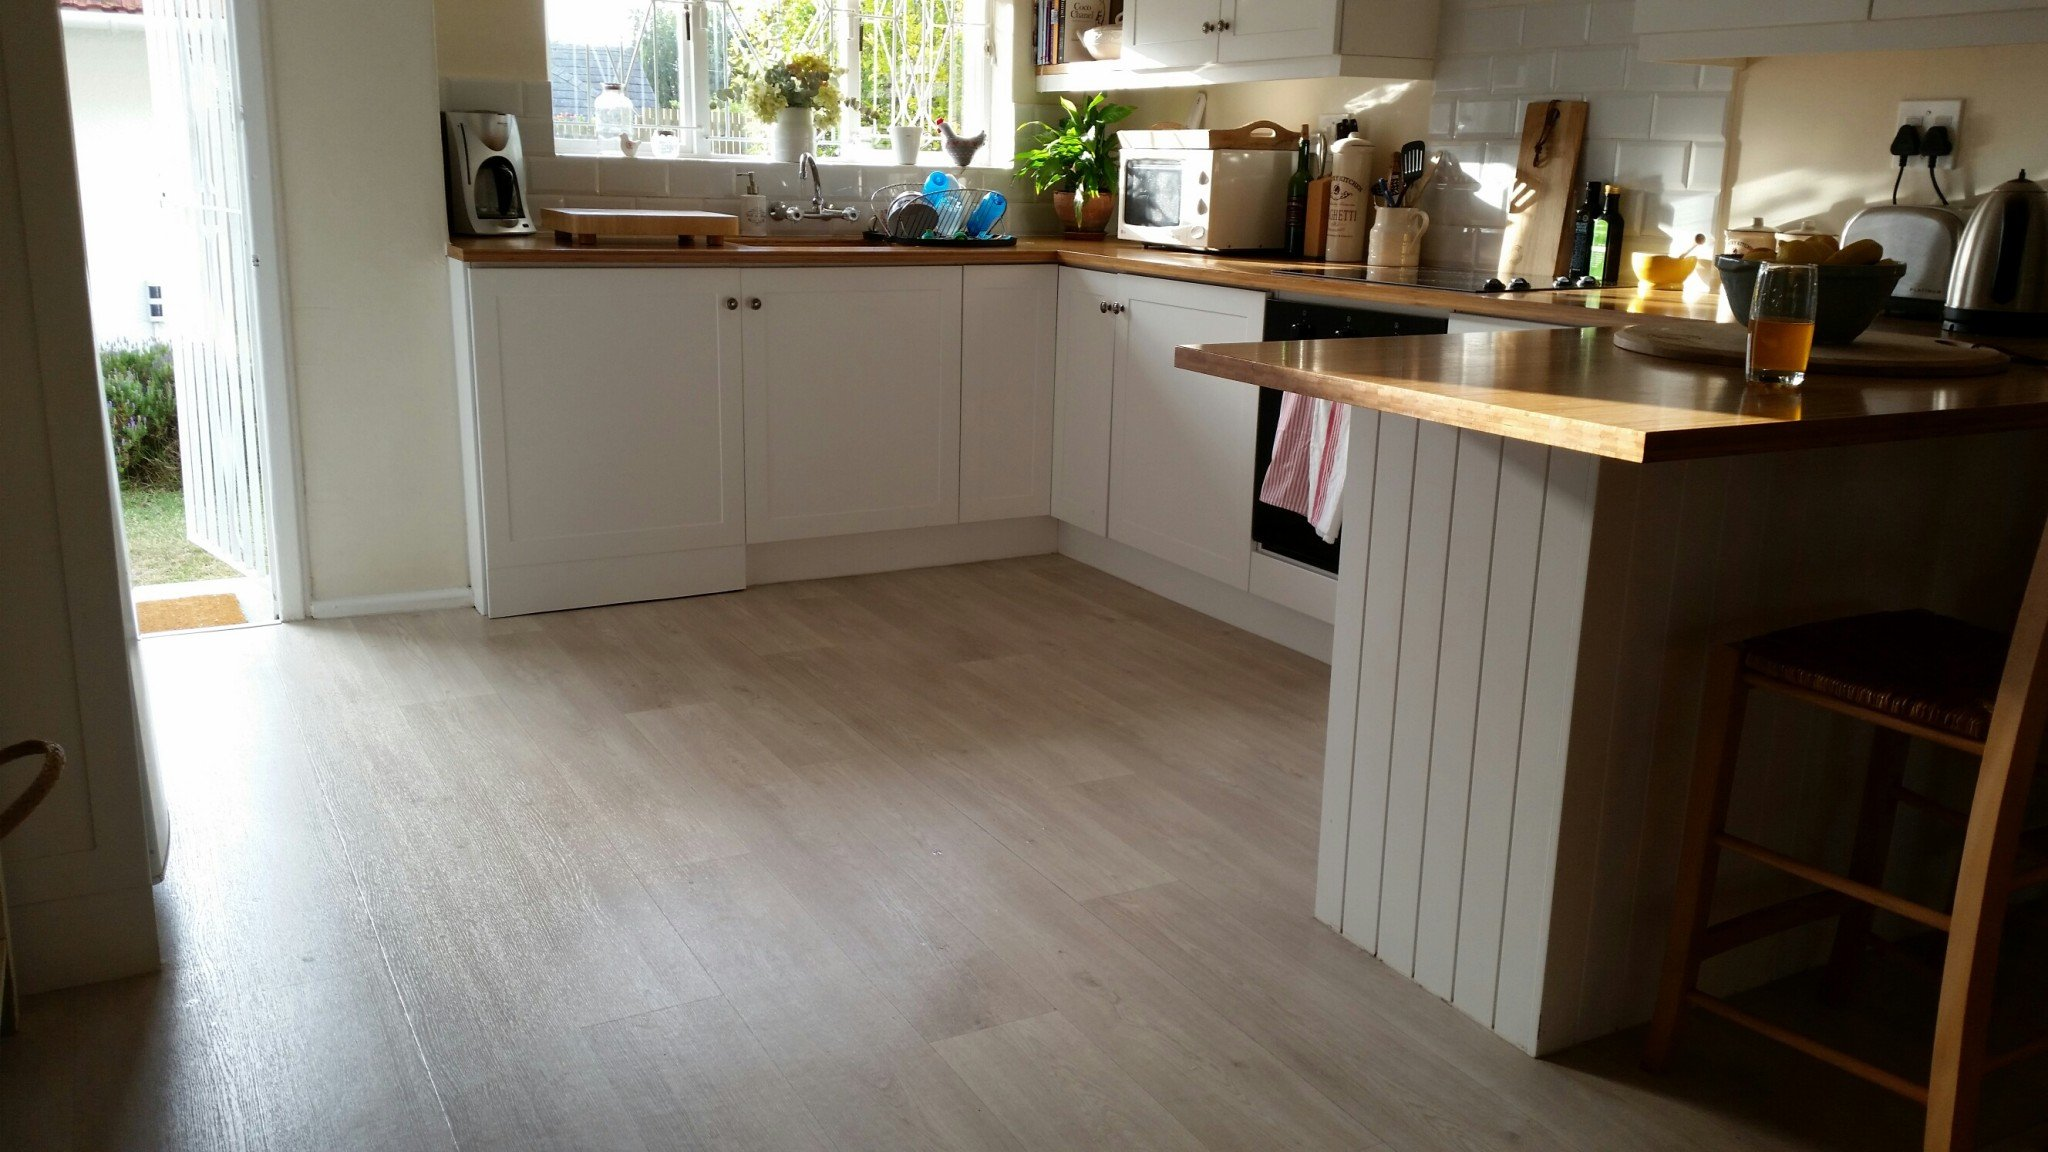 Columbian Oak Sheet Vinyl Flooring - perfect for kitchens & bathrooms. Also soft underfoot.